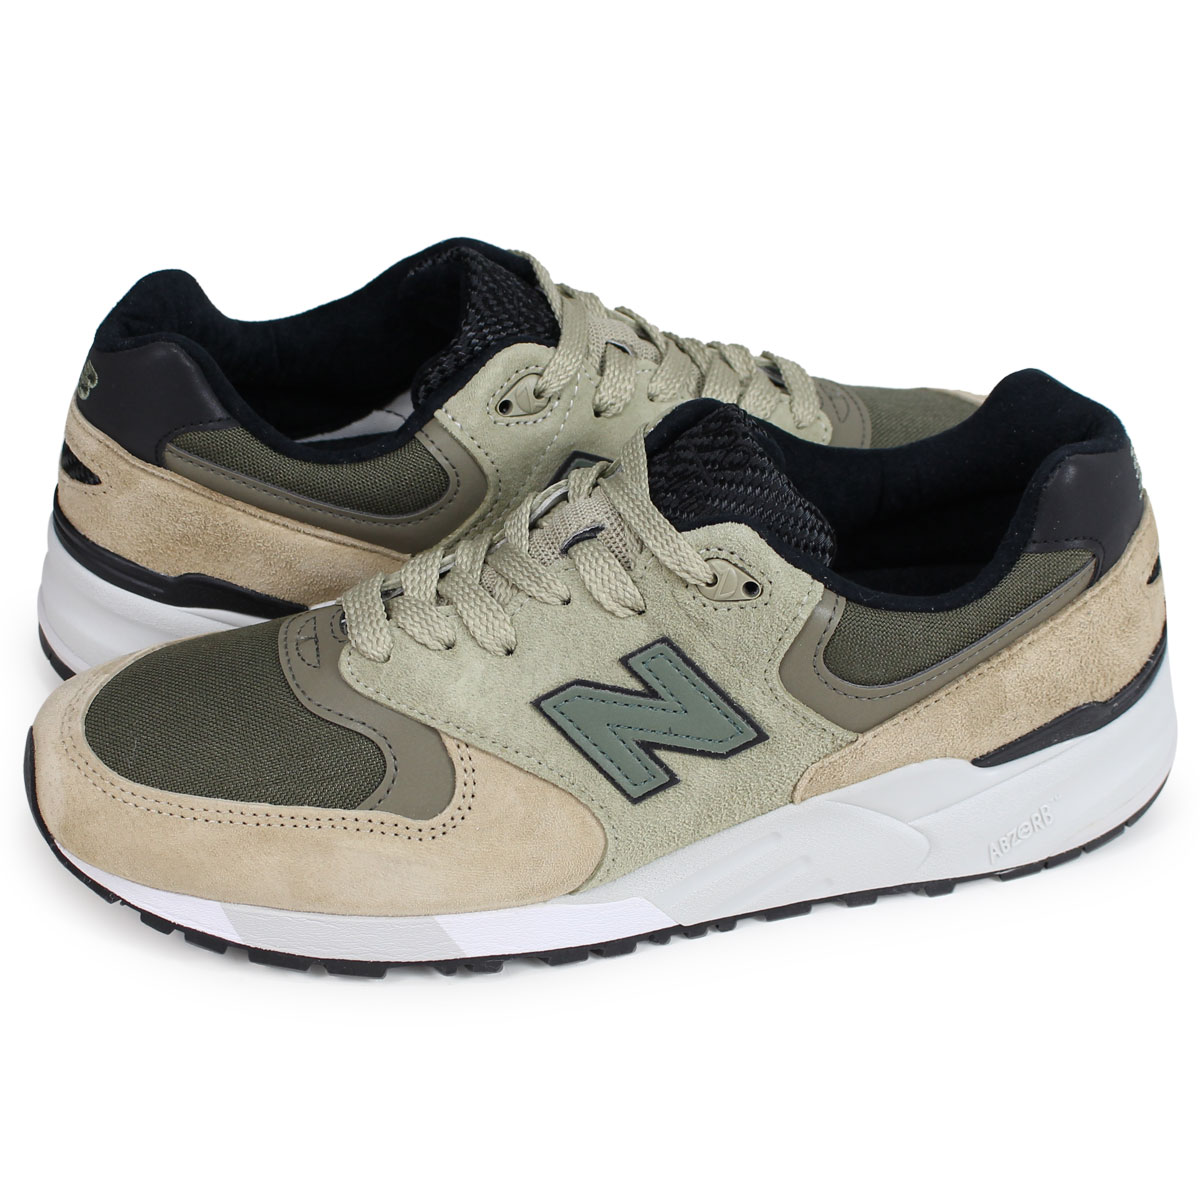 new products 4b1aa 0cbb1 new balance M999HCC New Balance 999 sneakers men D Wise MADE IN USA light  beige [193]